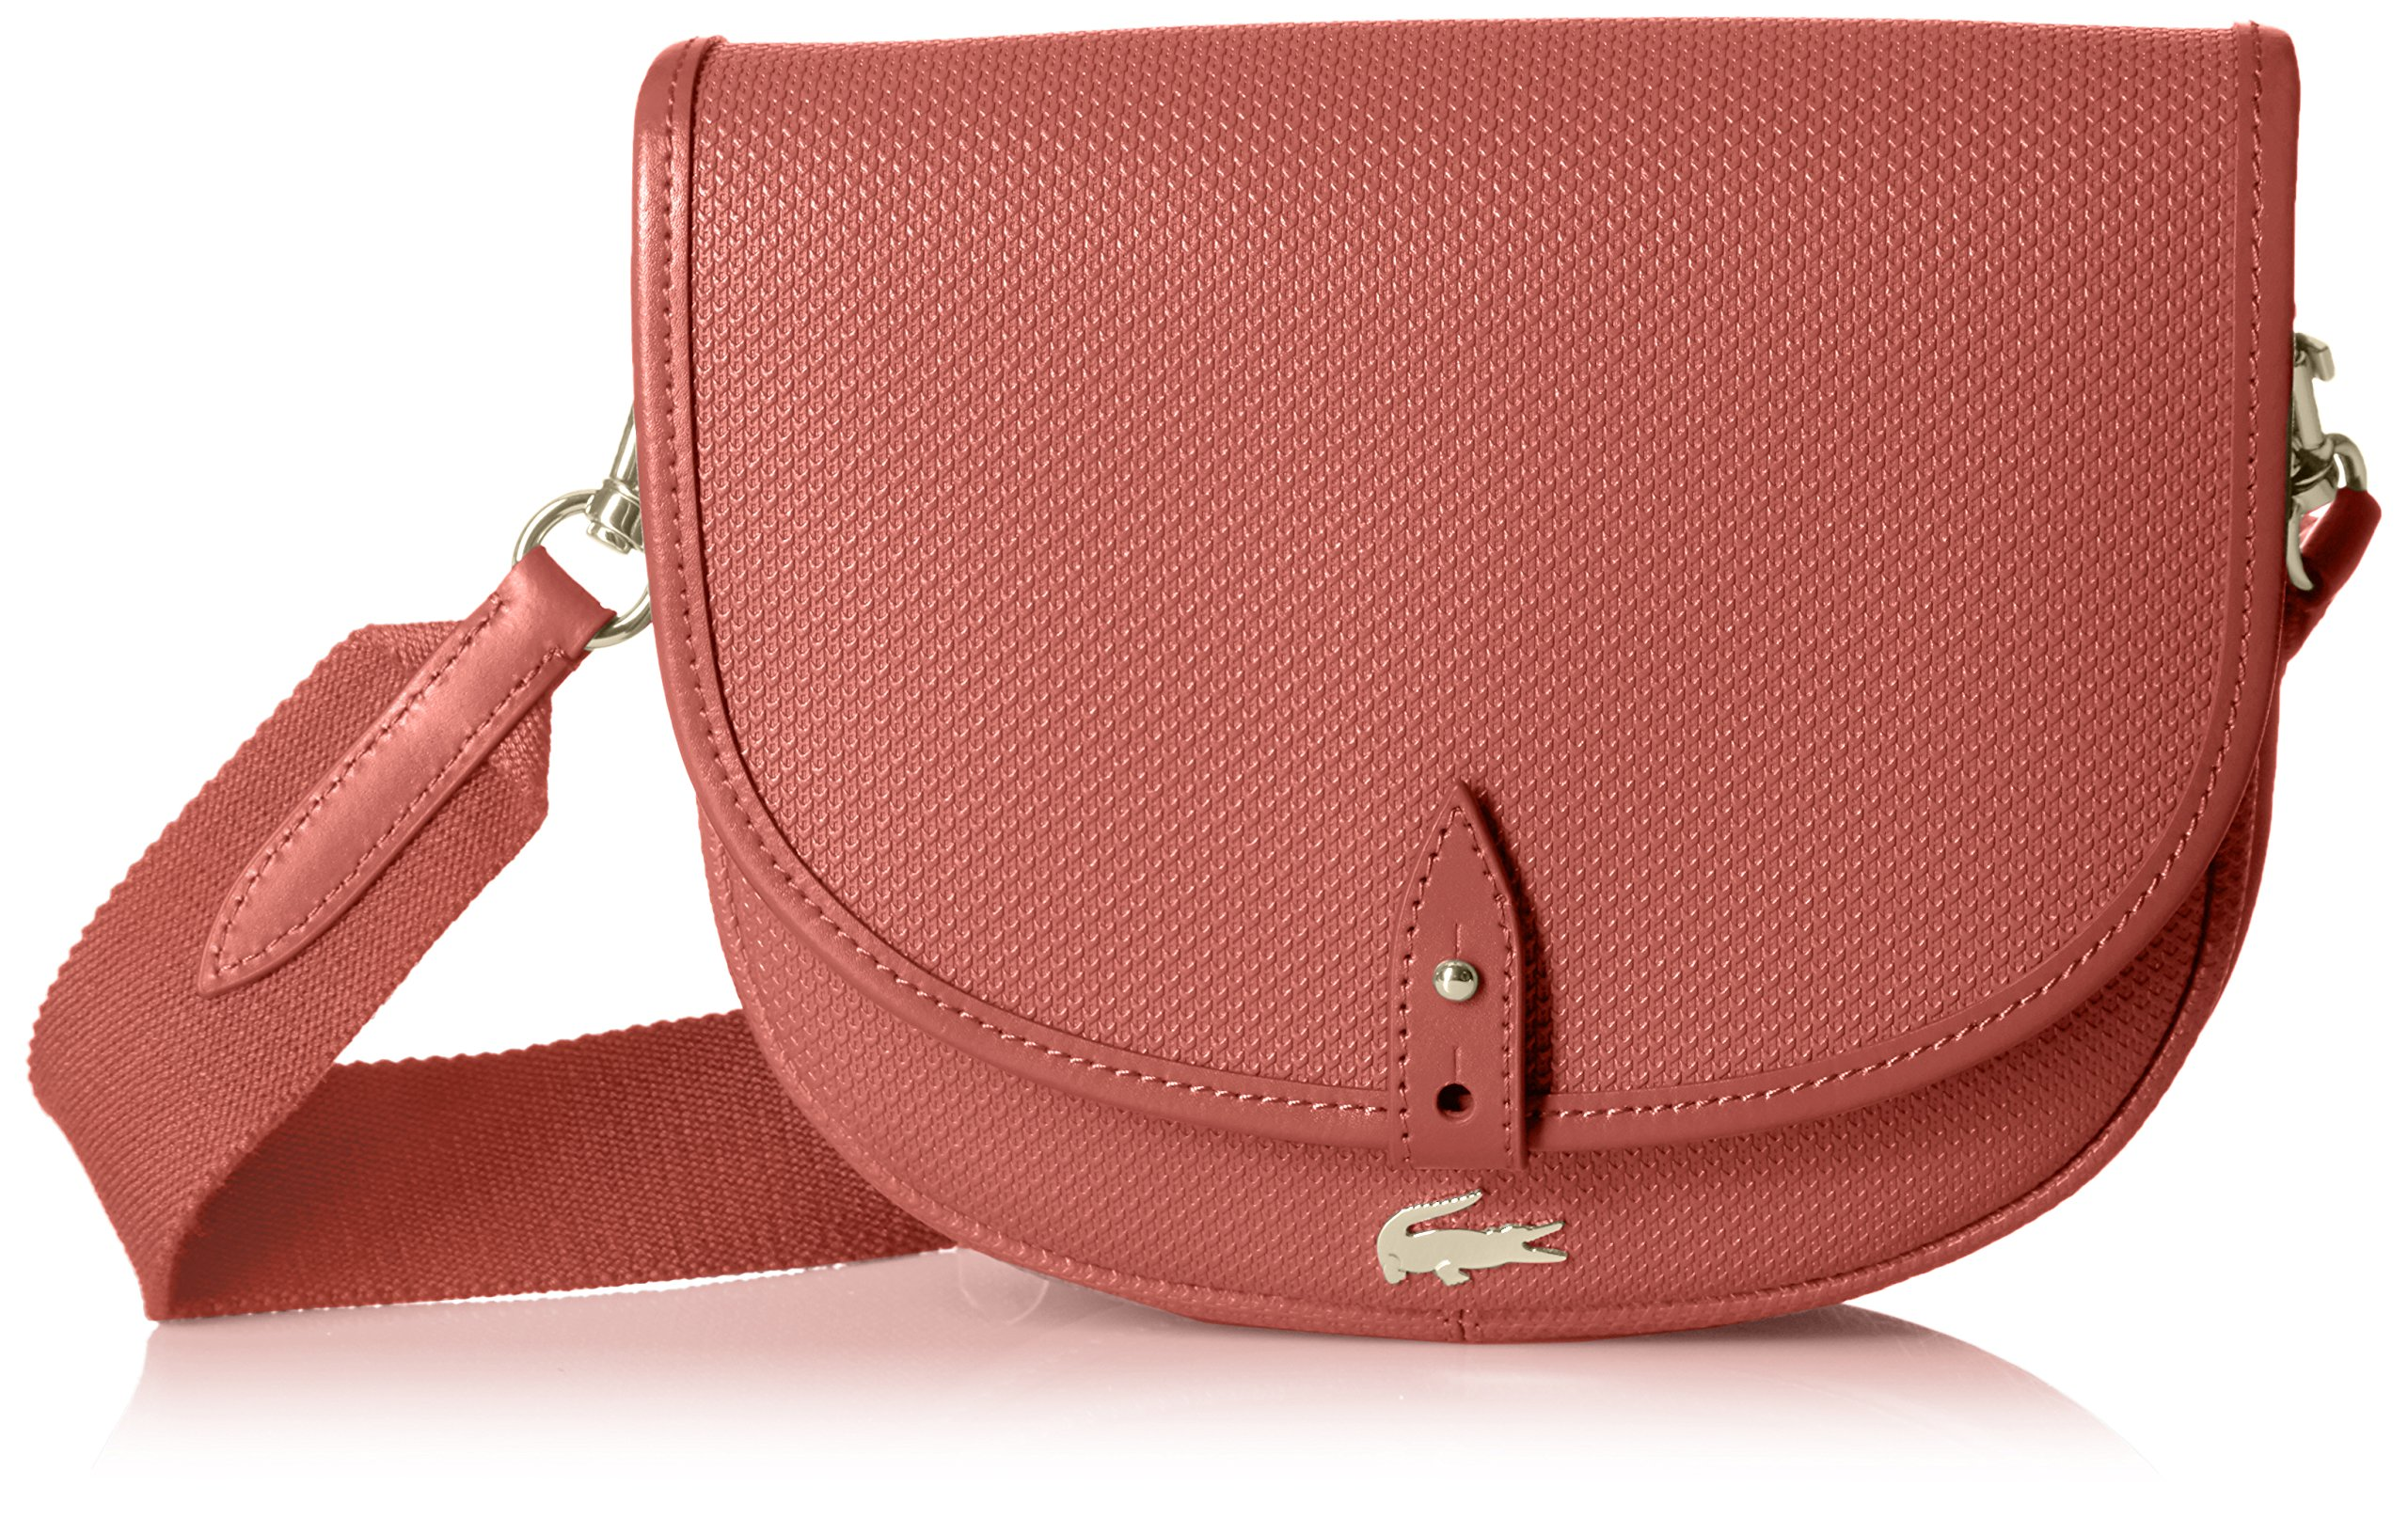 Lacoste Chantaco Round Crossover Bag, Mineral Red